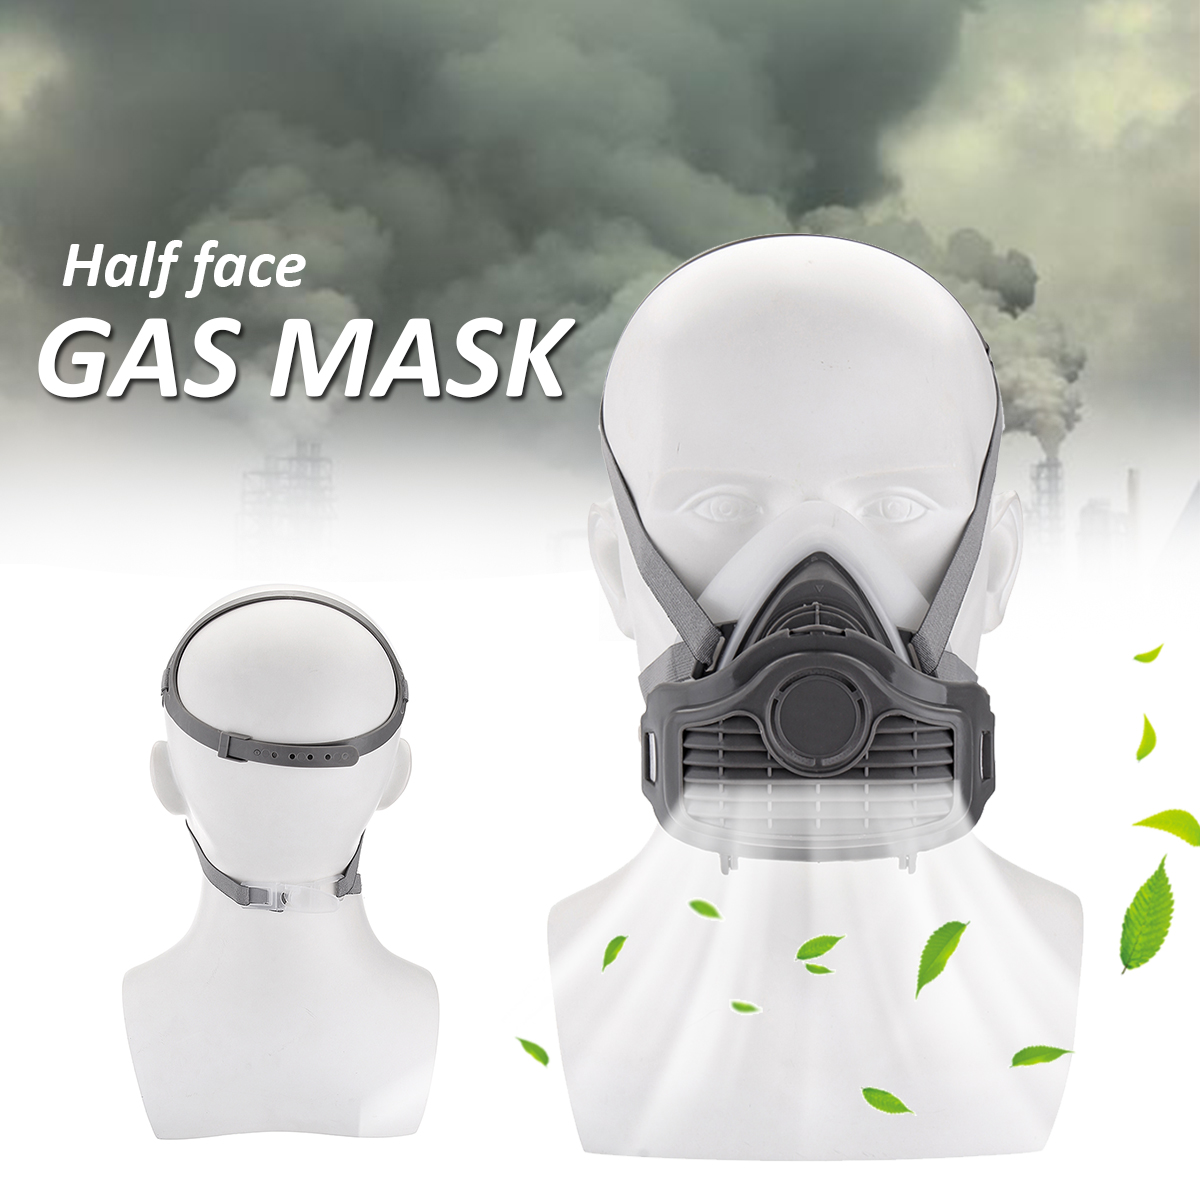 Safety Respiratory Gas Mask Half Face Filter Anti Dust Smoke Protective Mask for Painting Spraying Industrial Pesticide Chemical